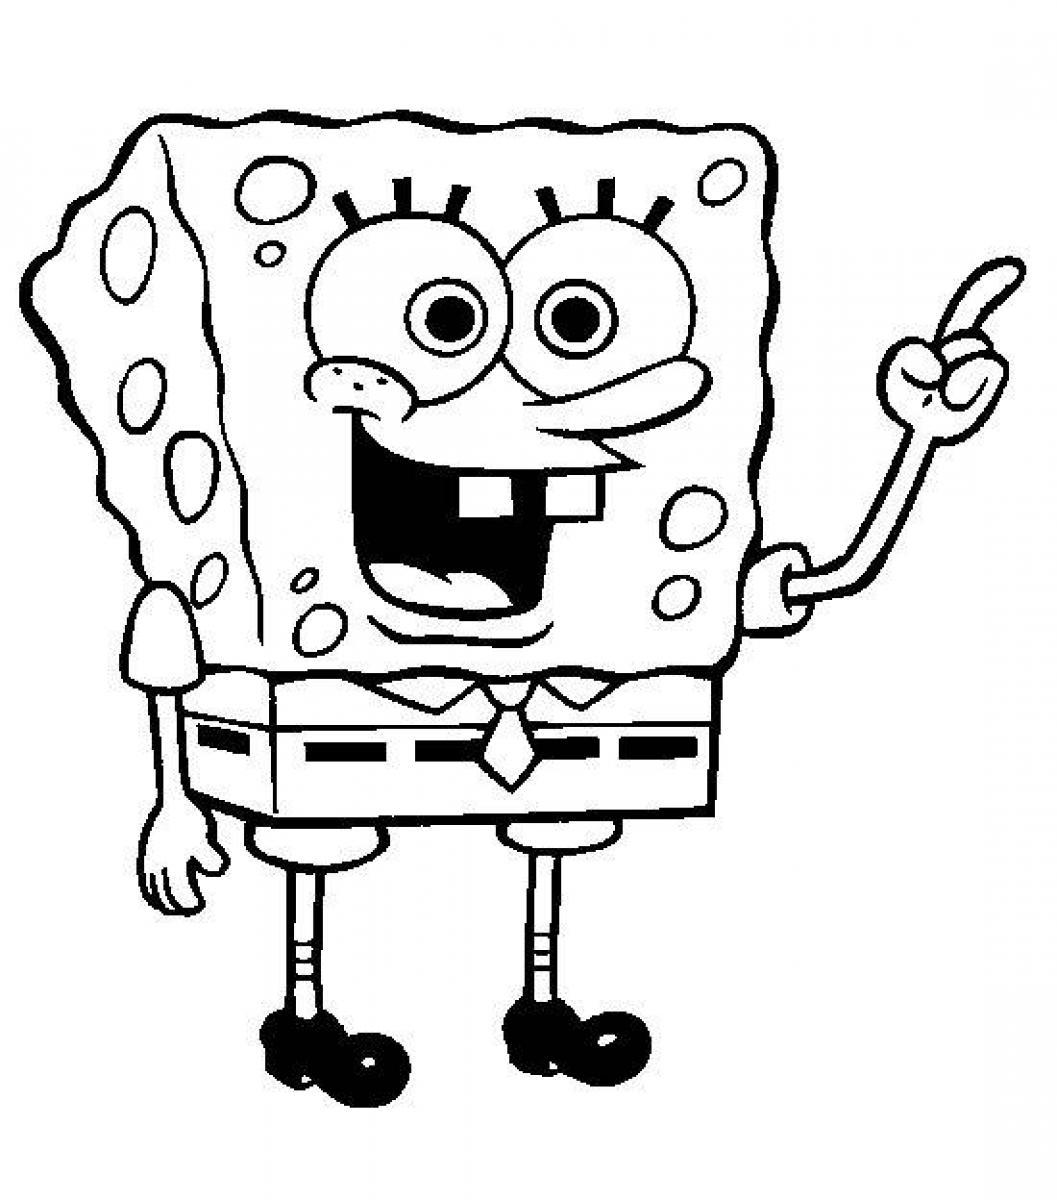 coloring pages of spongebob square - photo#2